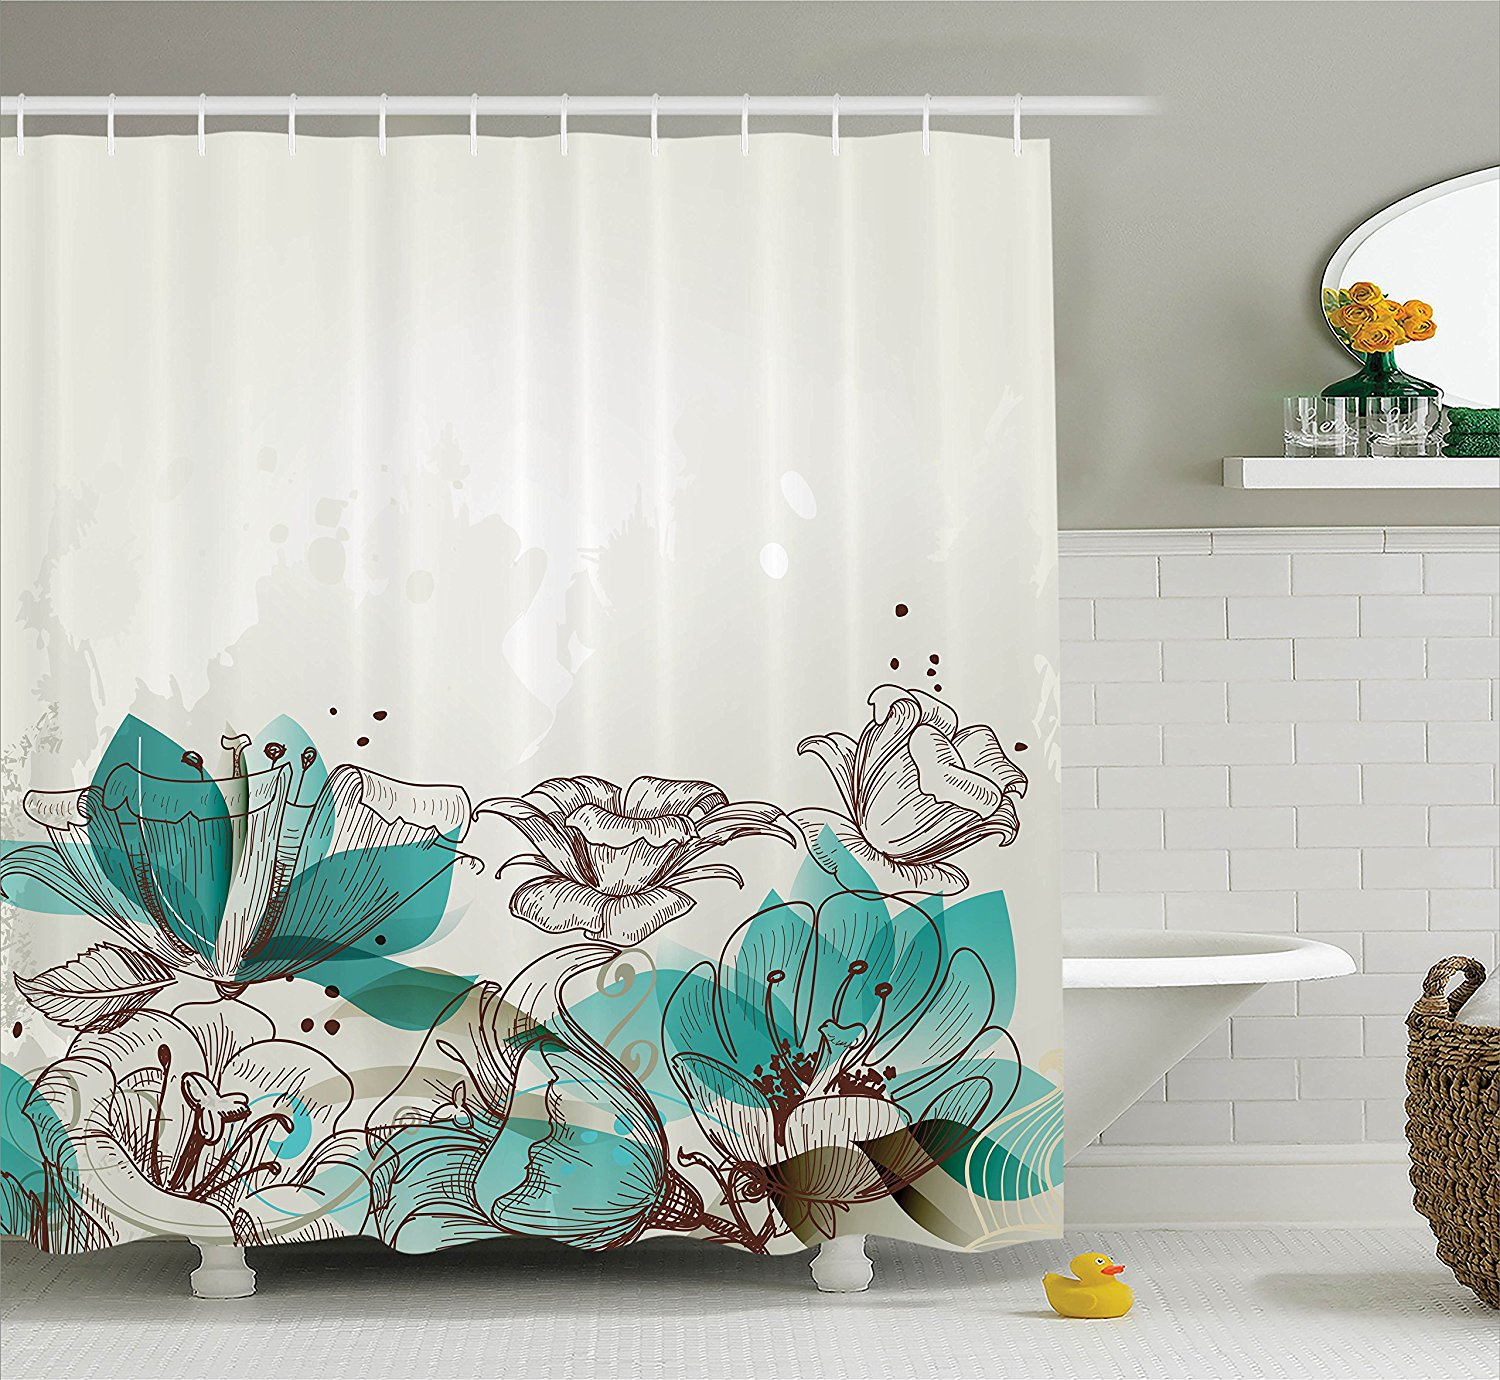 memory home turquoise decor shower curtain retro floral background nature bathroom accessories polyester fabric shower curtain